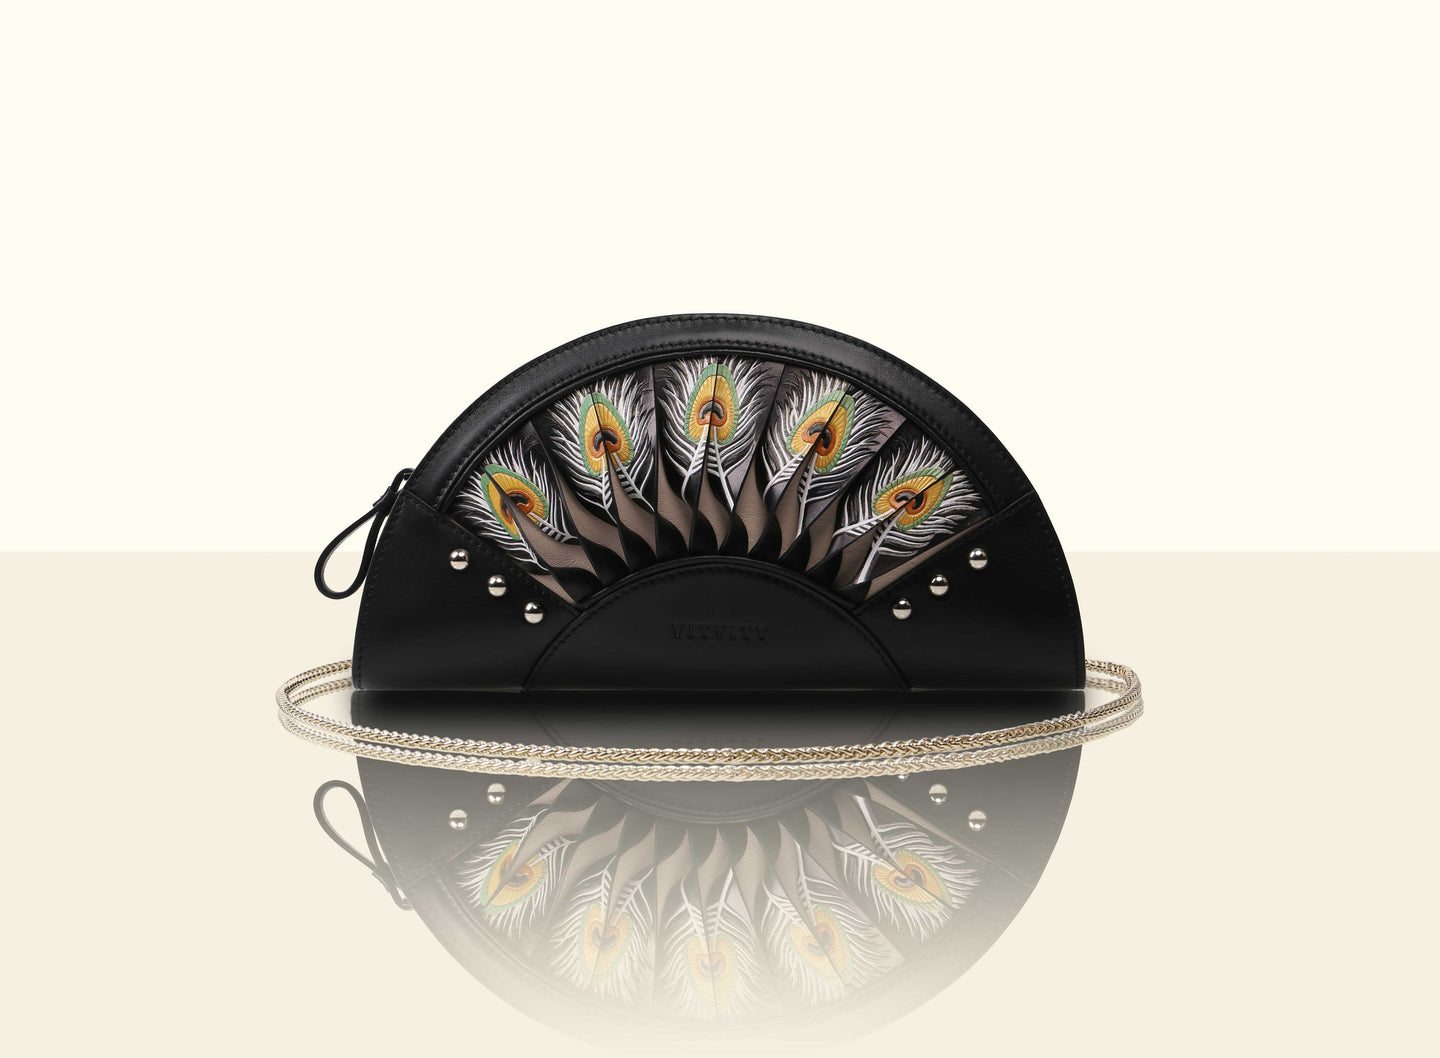 Exquisite Fan Clutch - Black